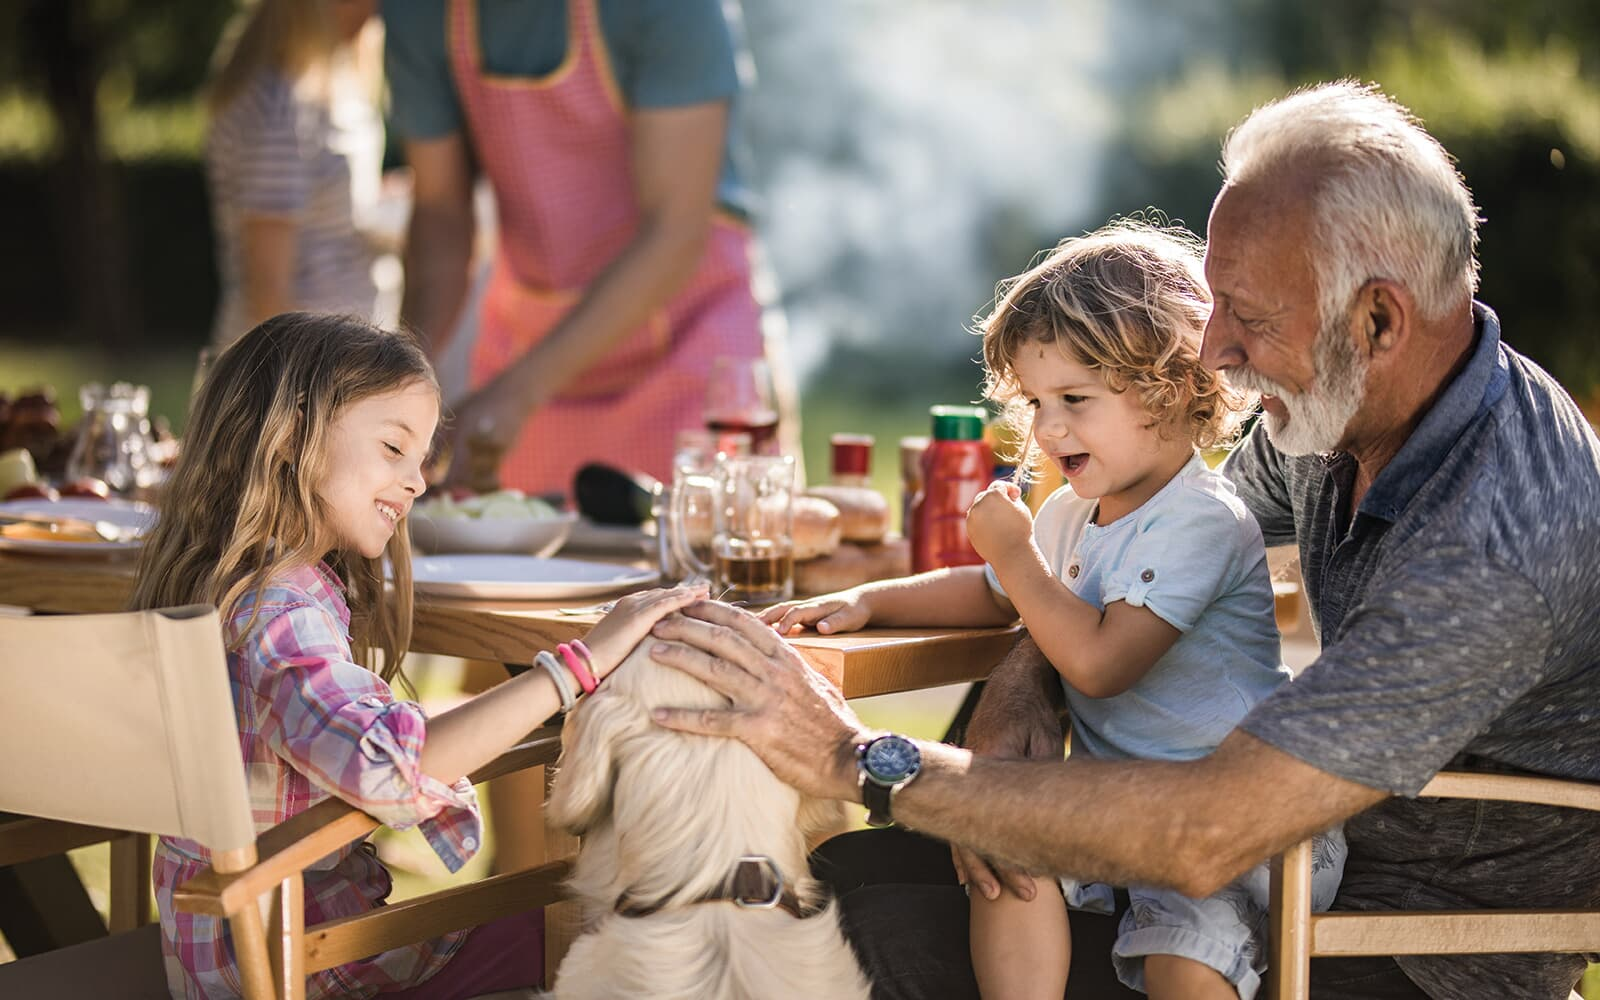 Grandfather With Grandaughters Petting a Dog at Family BBQ